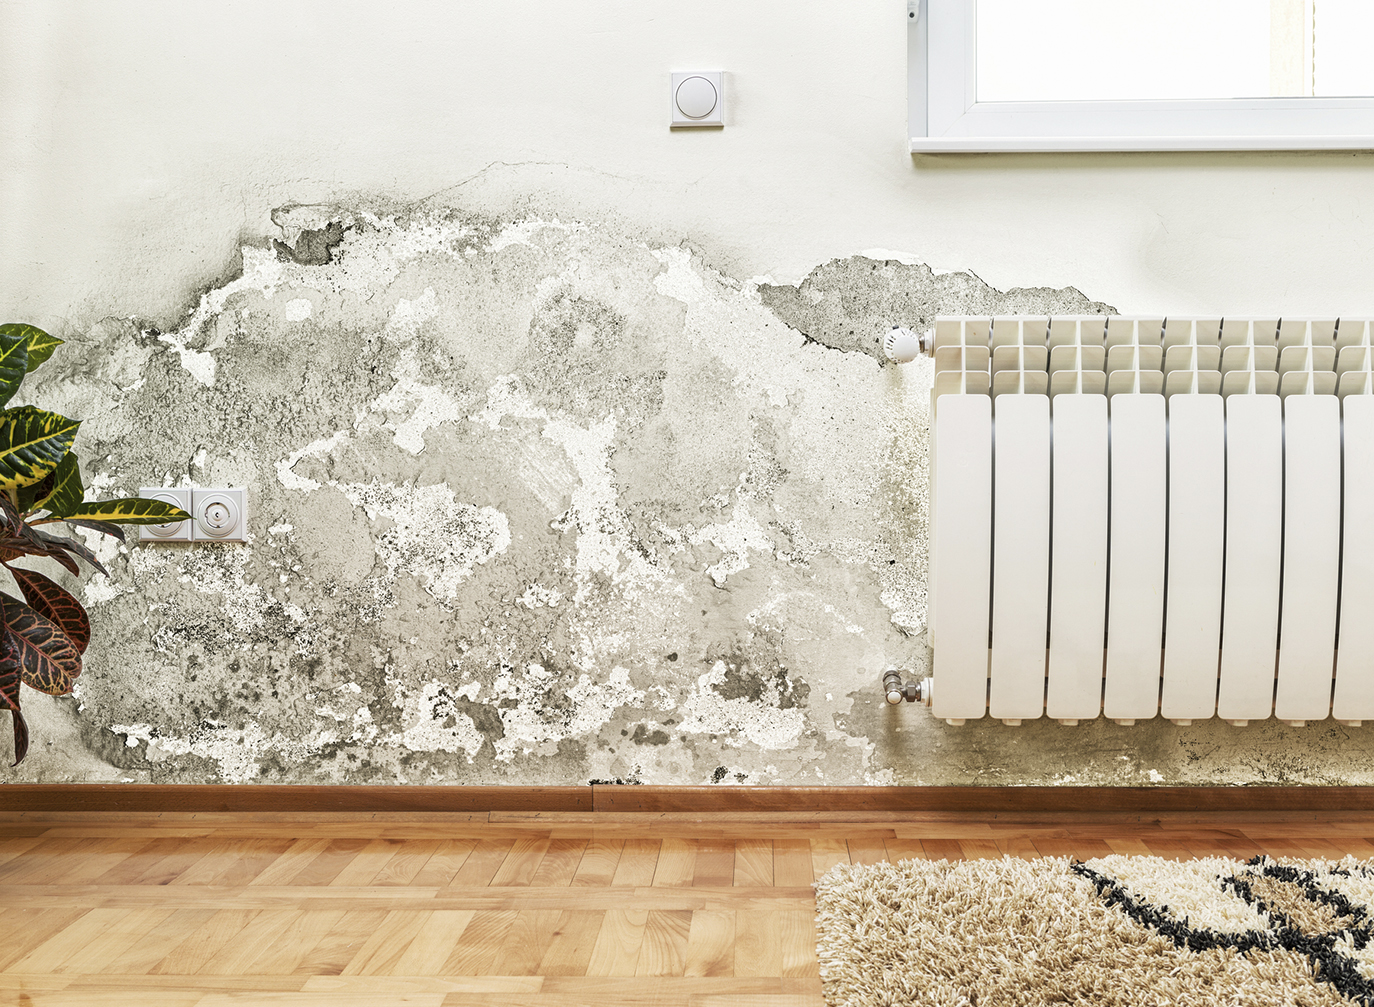 How To Get Rid Of Problems Due To Dampness In Your Home?